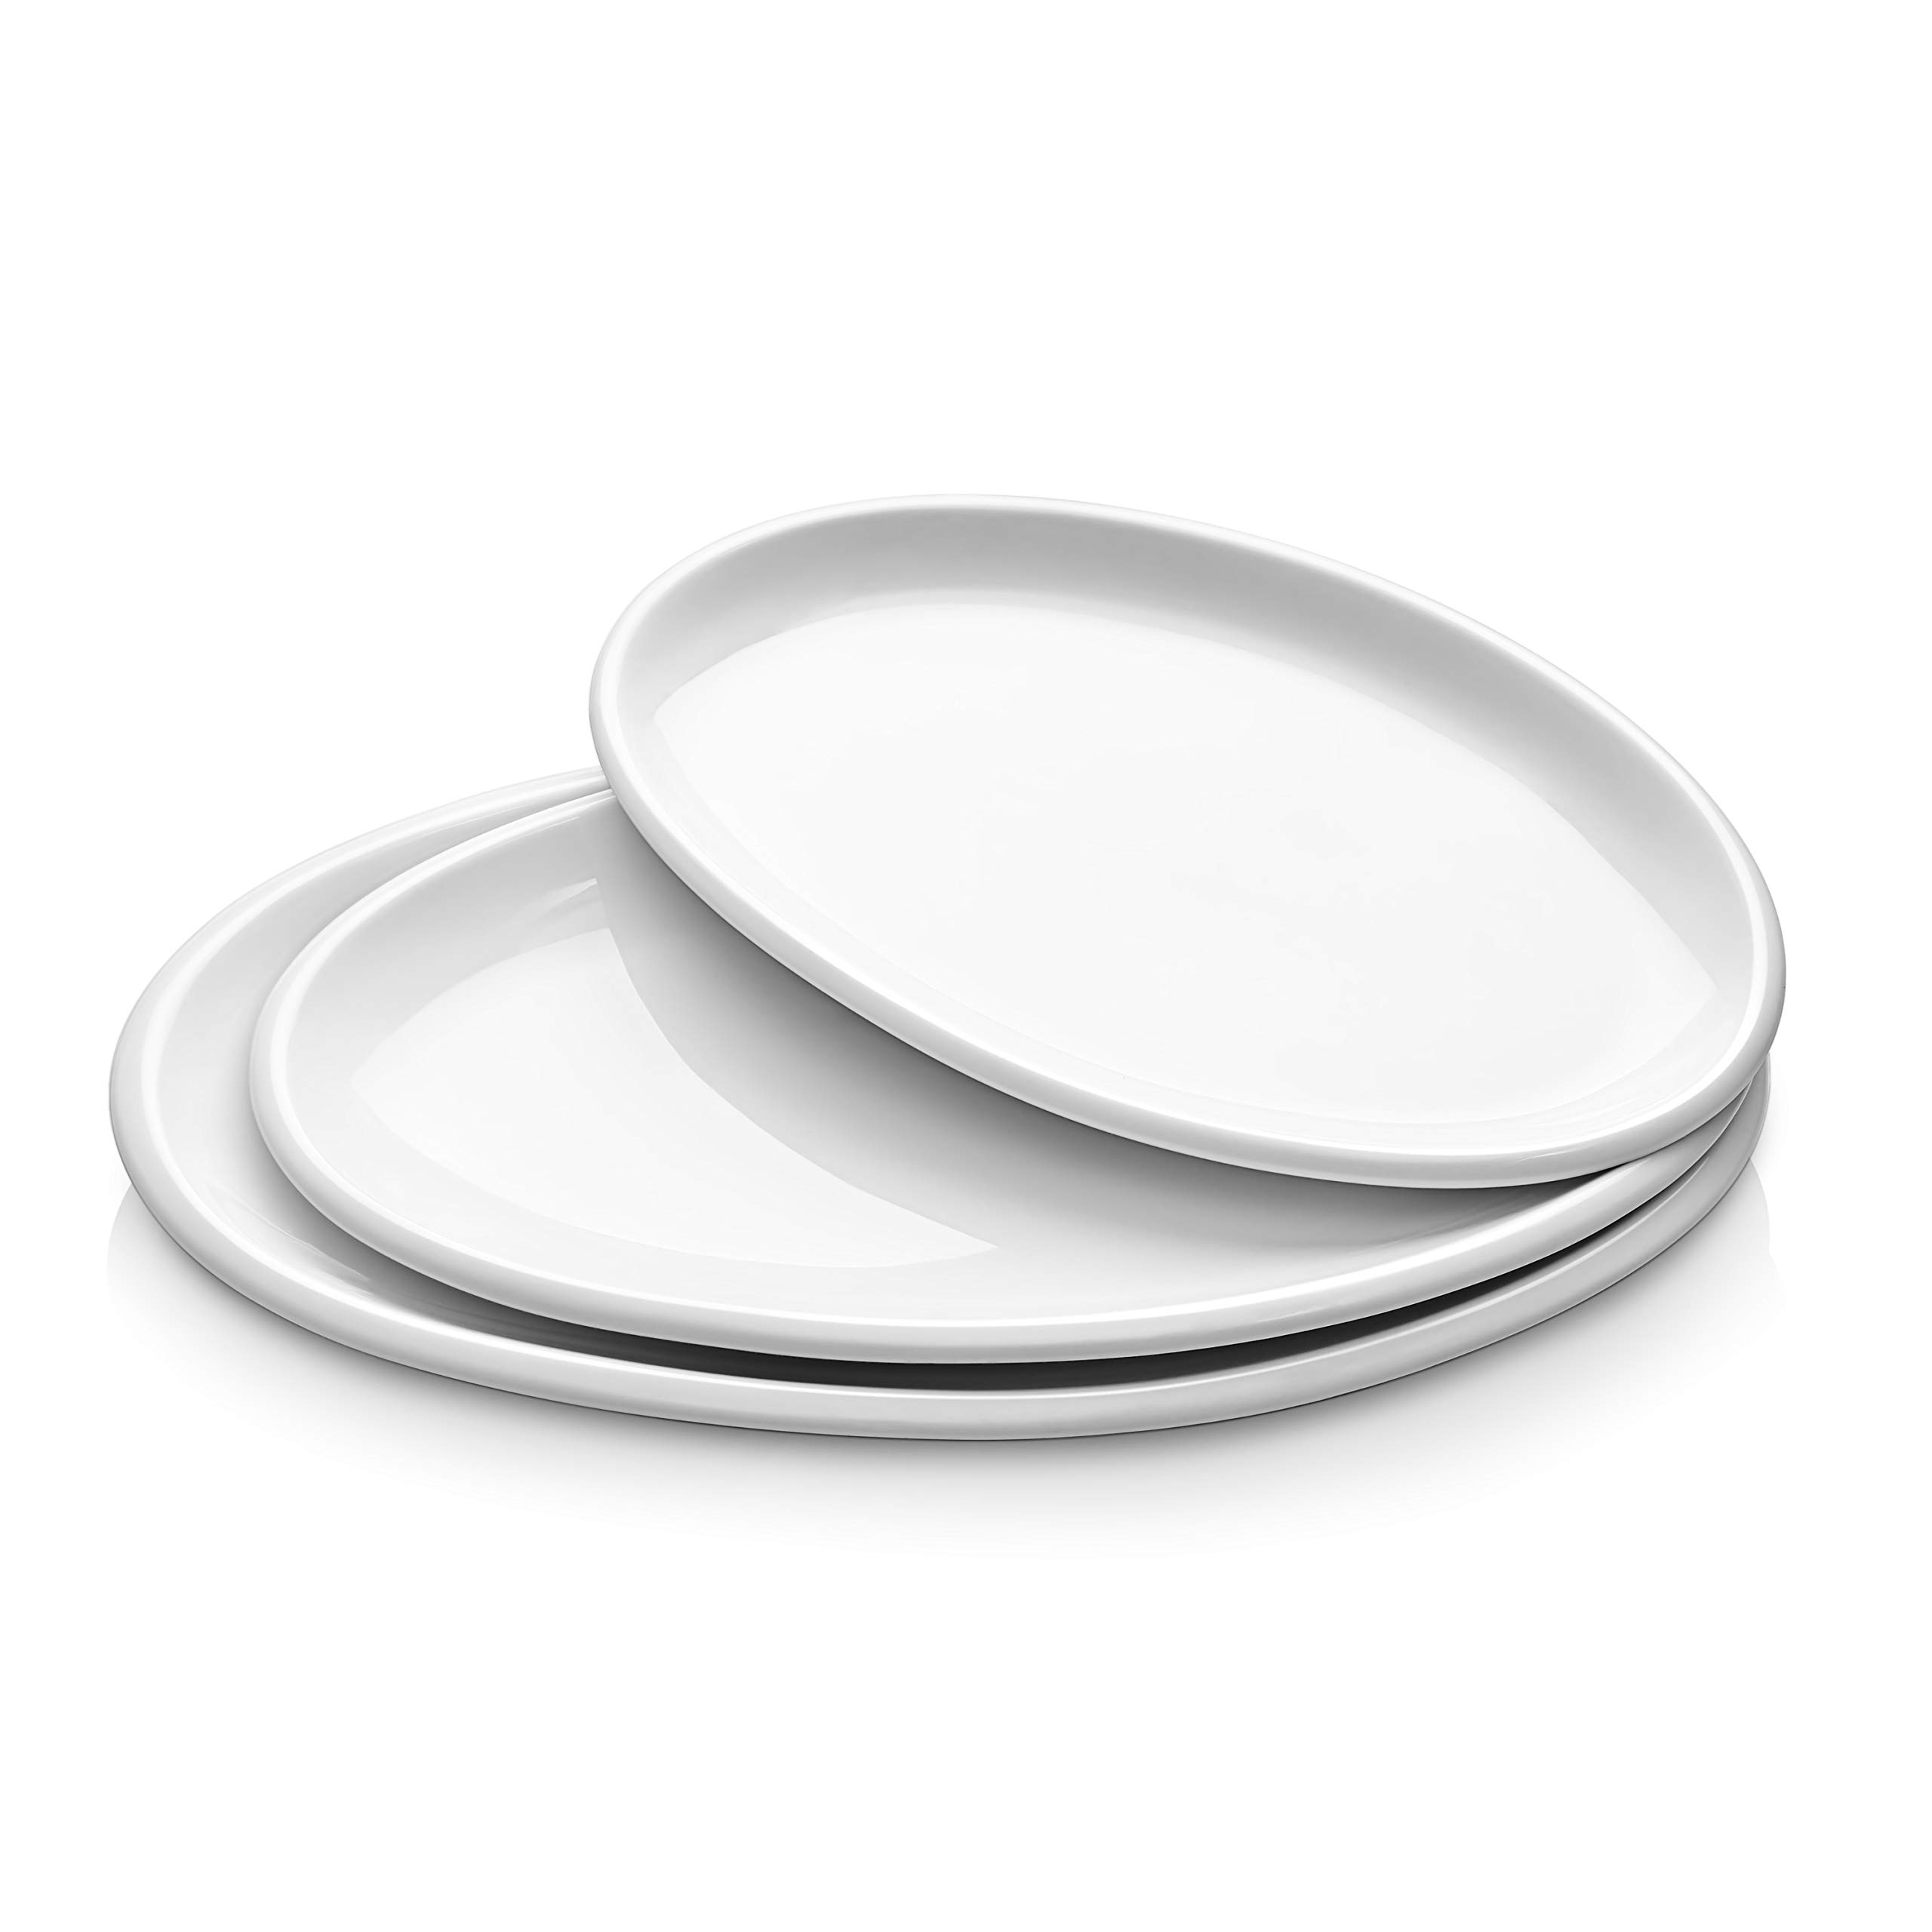 DOWAN Porcelain Platters, Oval Serving Plates for Parties, 12 Inches, 14 Inches, 15.5 Inches, Set of 3, White by DOWAN